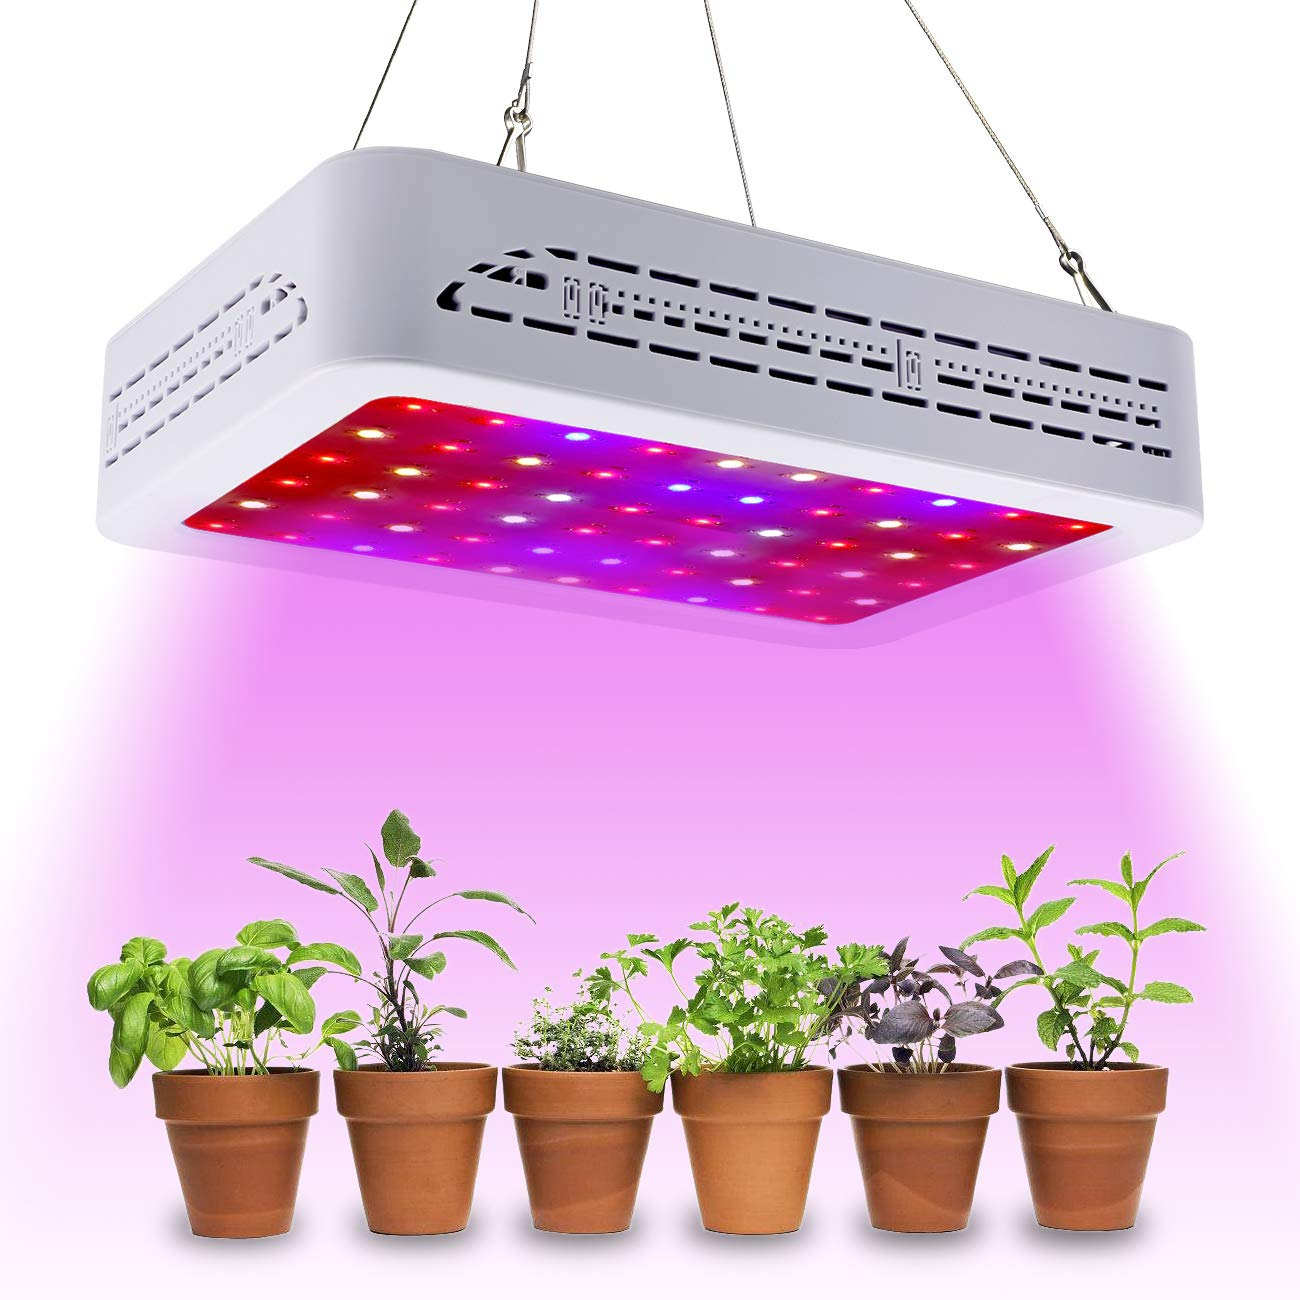 quality design afbde 2cd24 Golspark 600w LED Plant Grow Light,Upgraded Full Spectrum Reflector-Series  Plant Light for Greenhouse Hydroponic Indoor Plant Veg and Flower